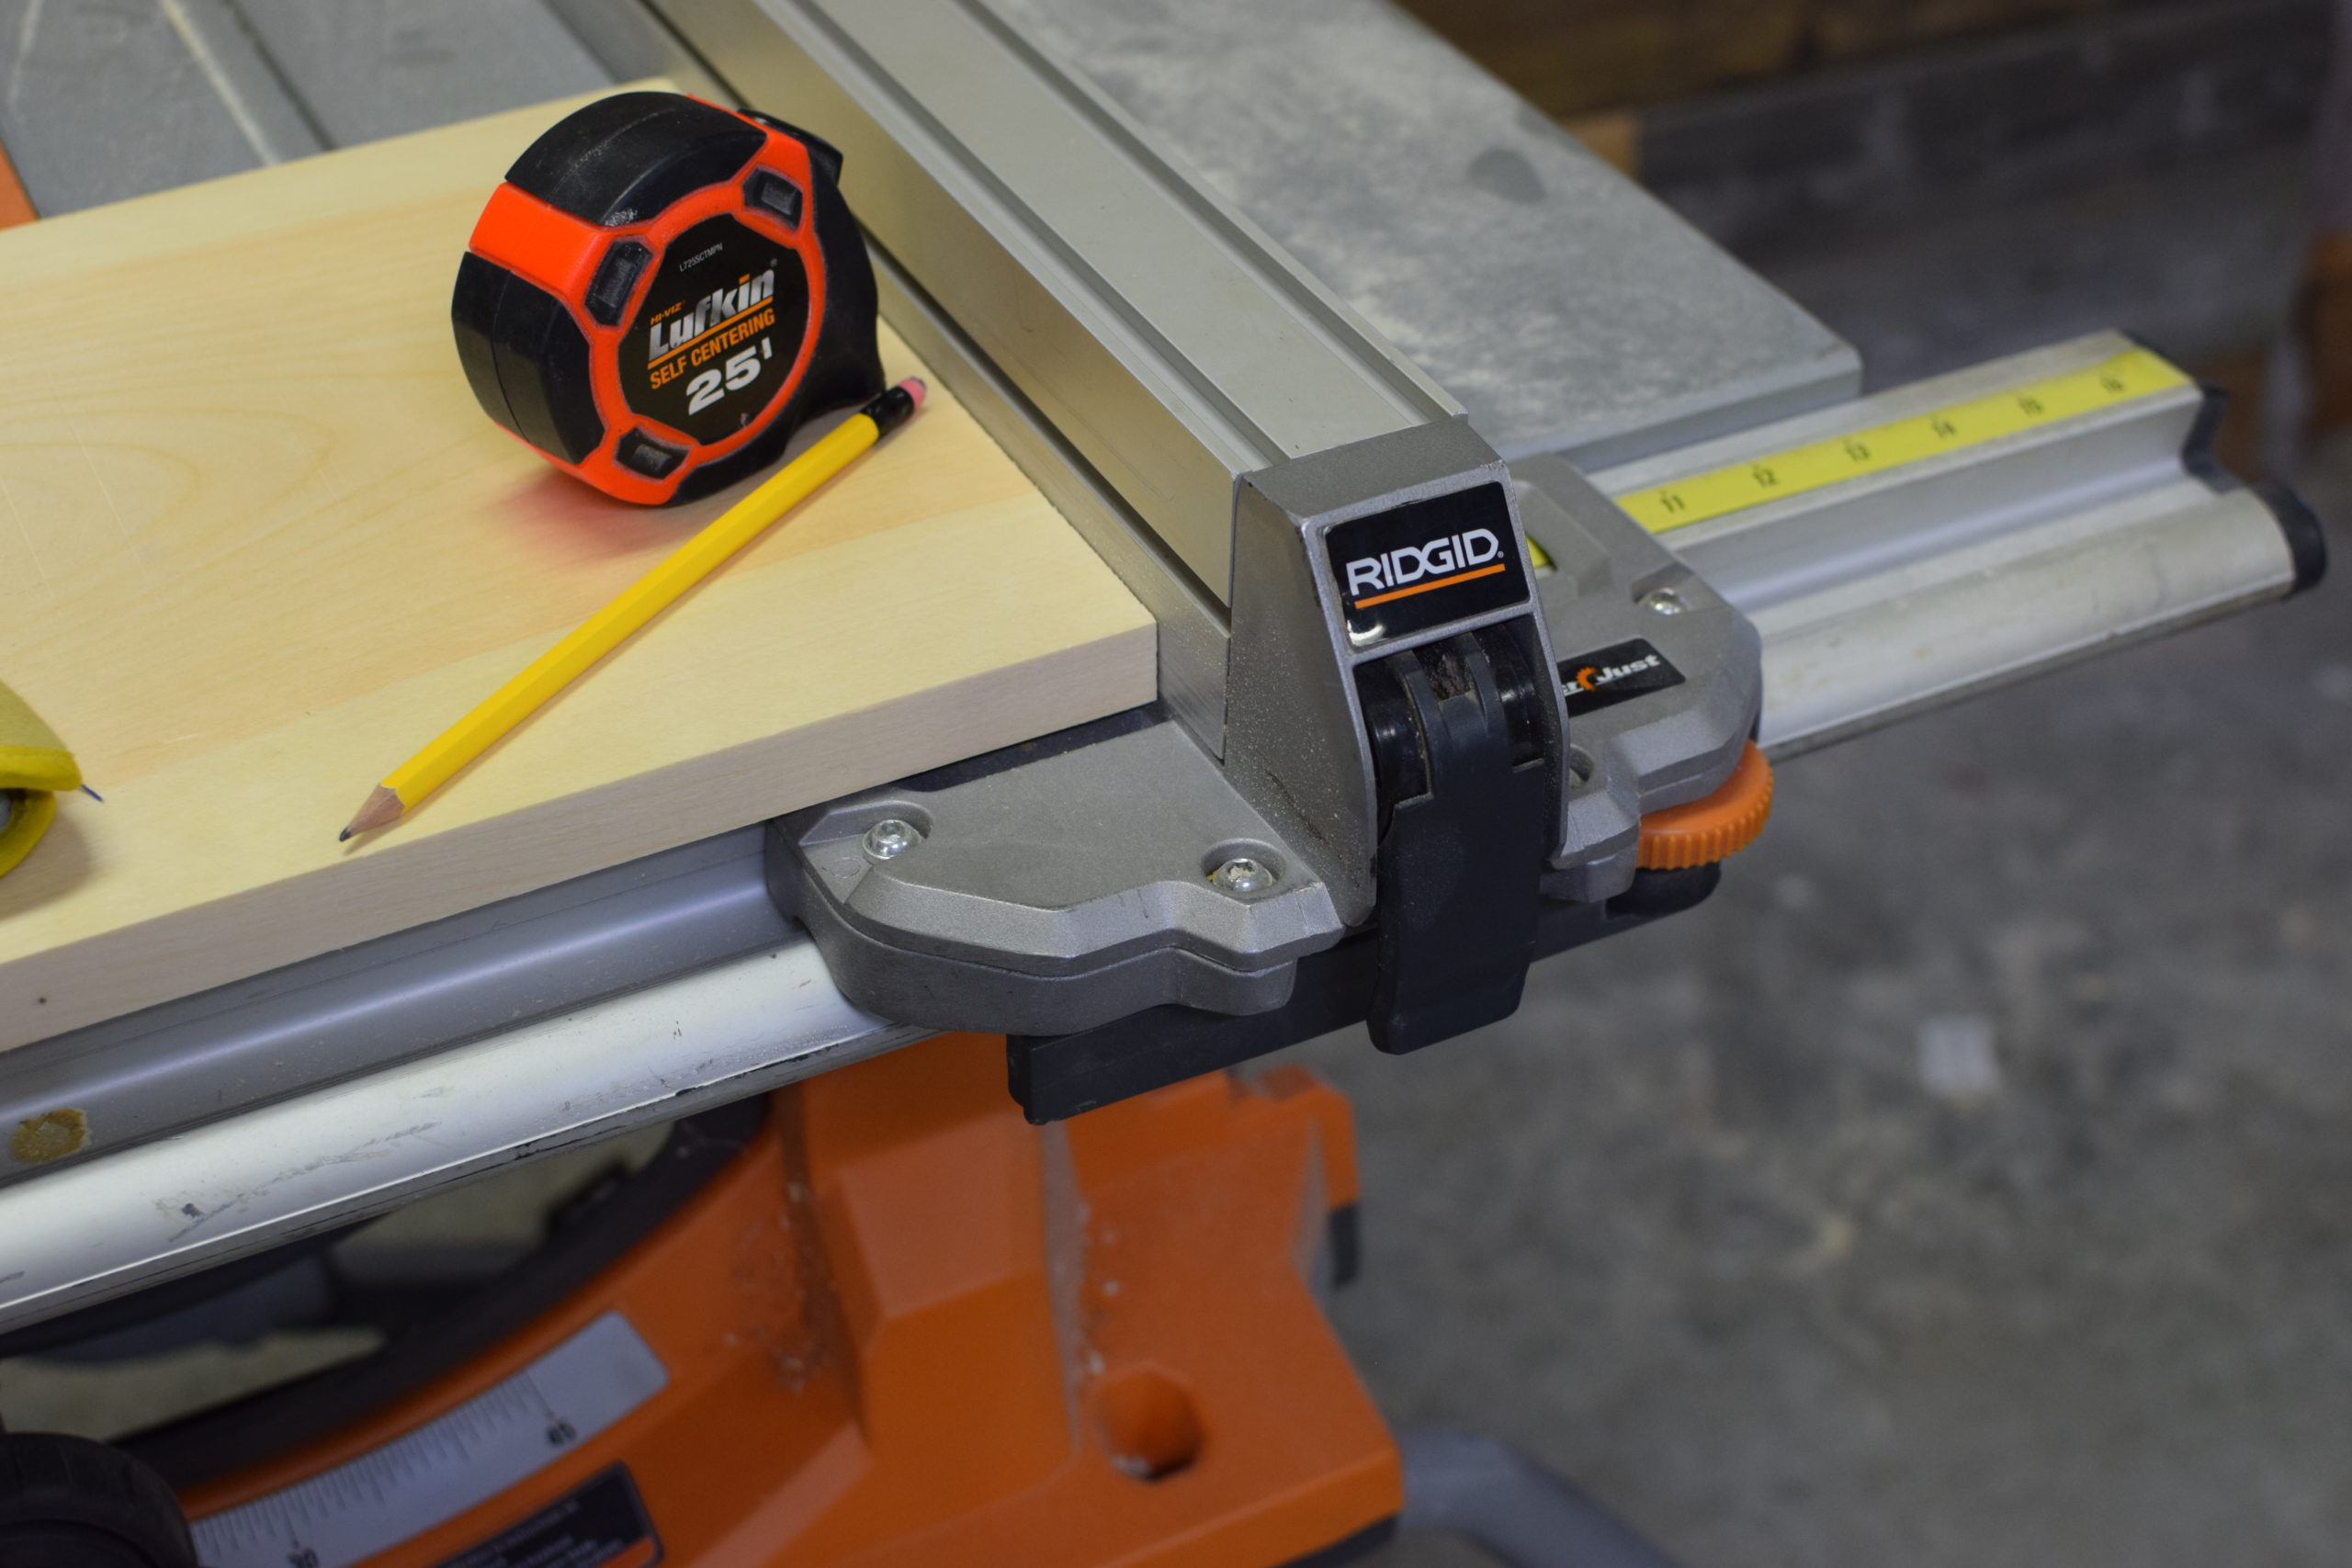 tape measure and pencil on top of wood on an orange table saw